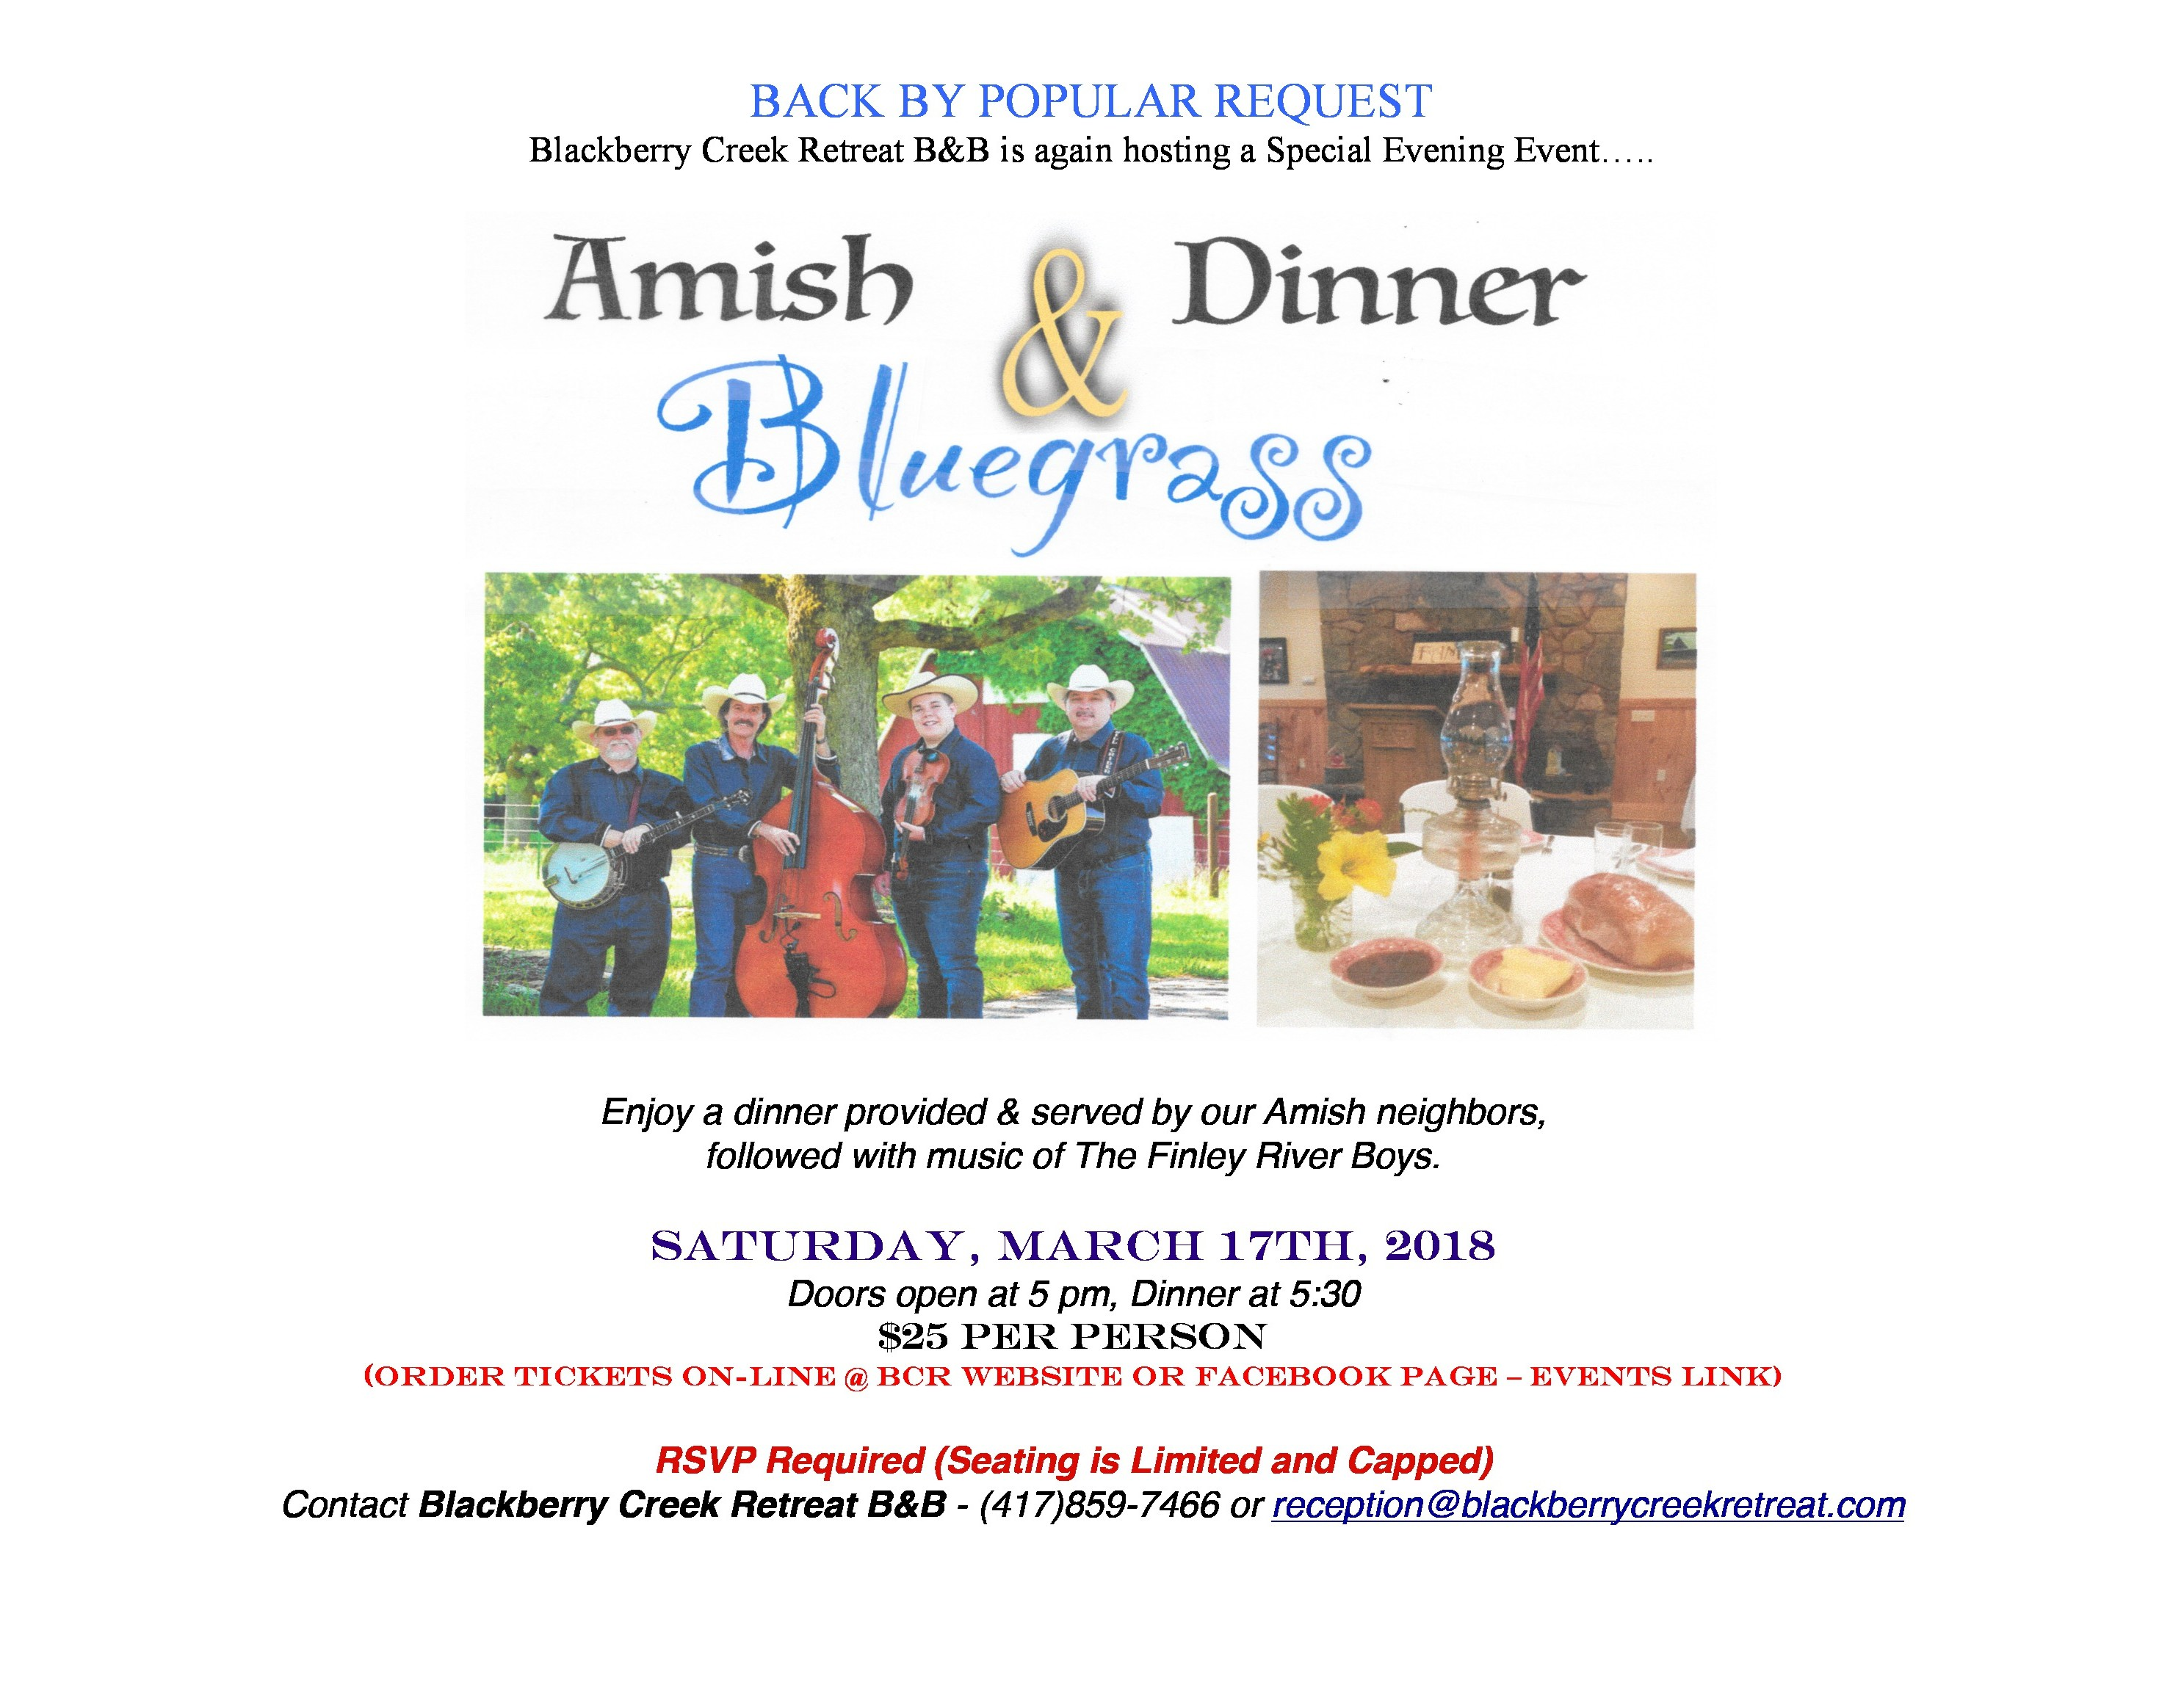 Amish Dinner and Bluegrass